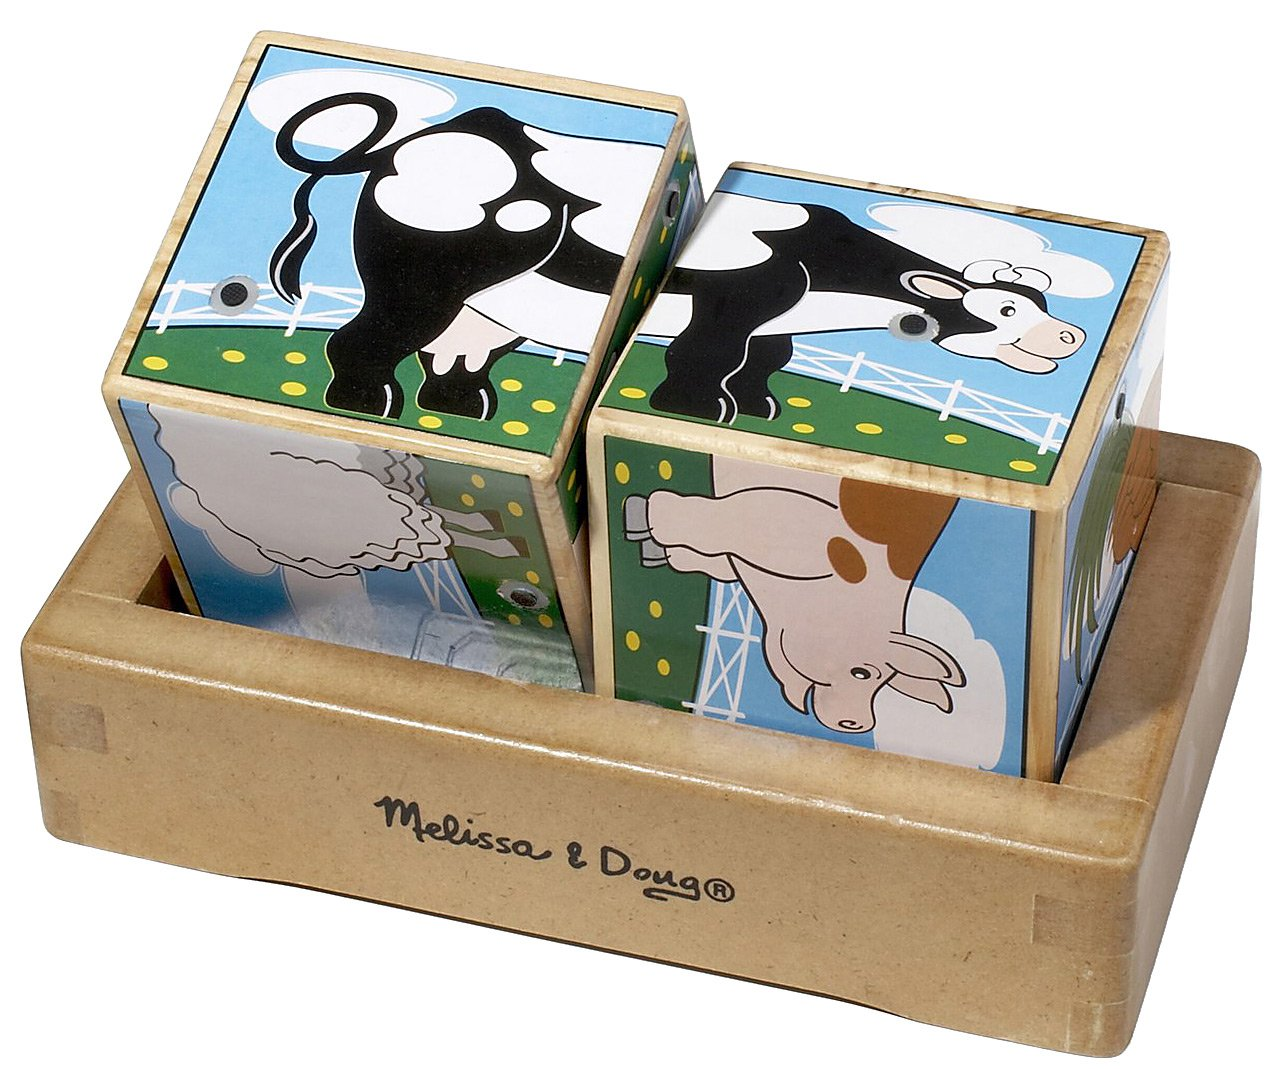 """The farm animals """"sound off"""" when the two wooden cubes are properly placed in the wooden tray! Find the halves that match and listen to six realistic farm animal sounds. This helps to develop visual perception and fine motor skills.  Appropriate for ages 2 and up."""